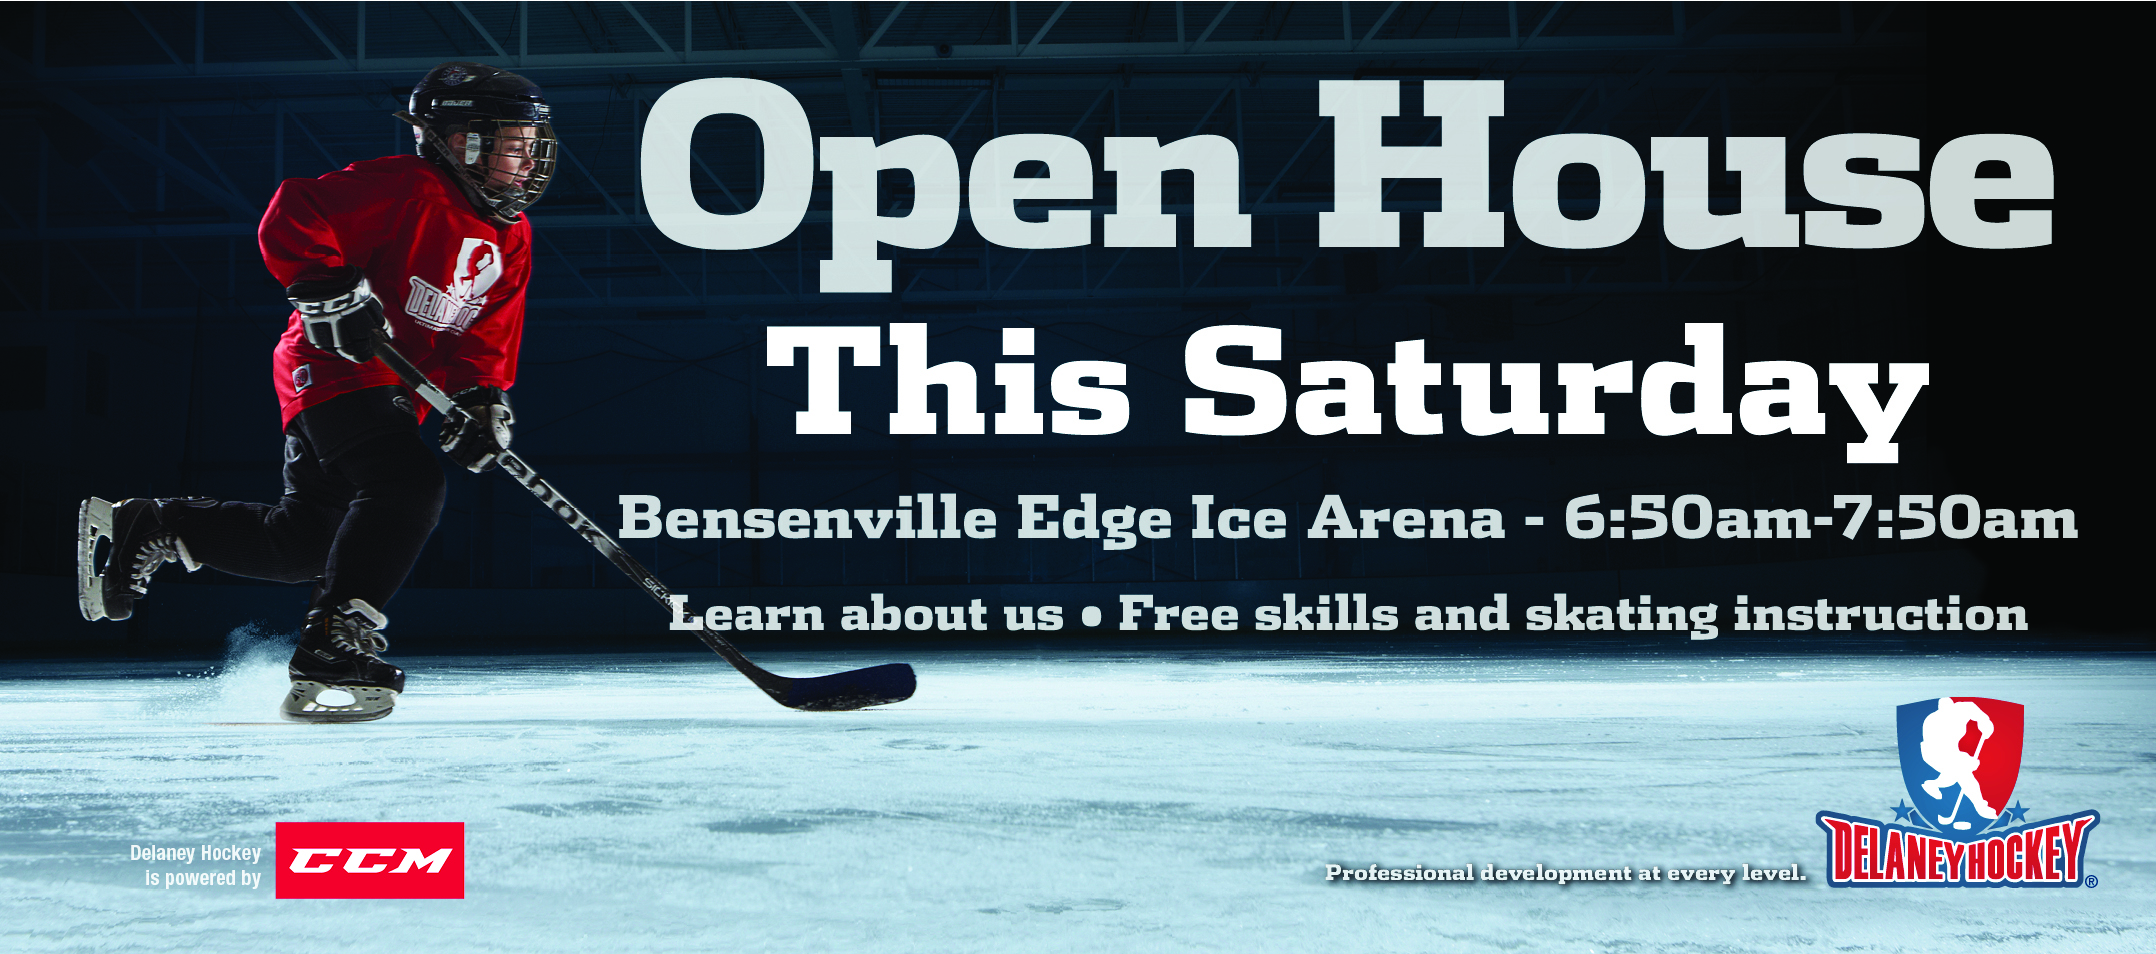 Delaney Hockey Bensenville Open House